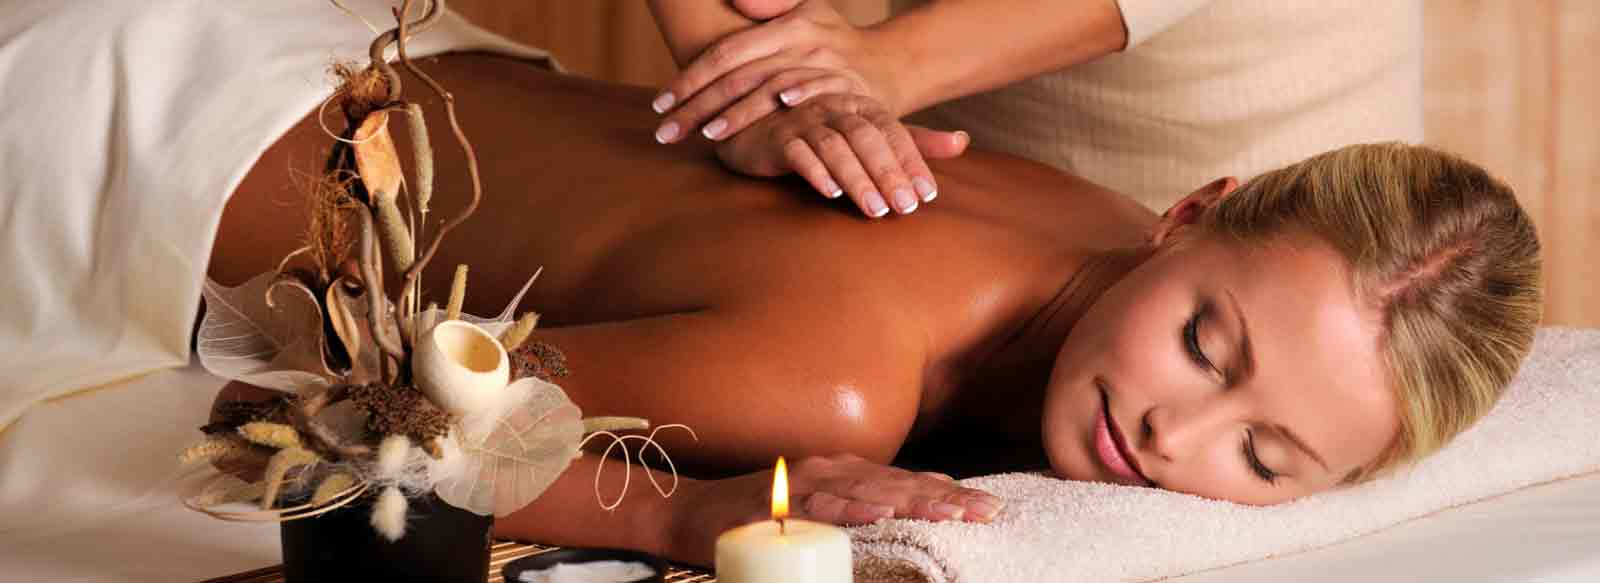 Spa Treatments in Shropshire